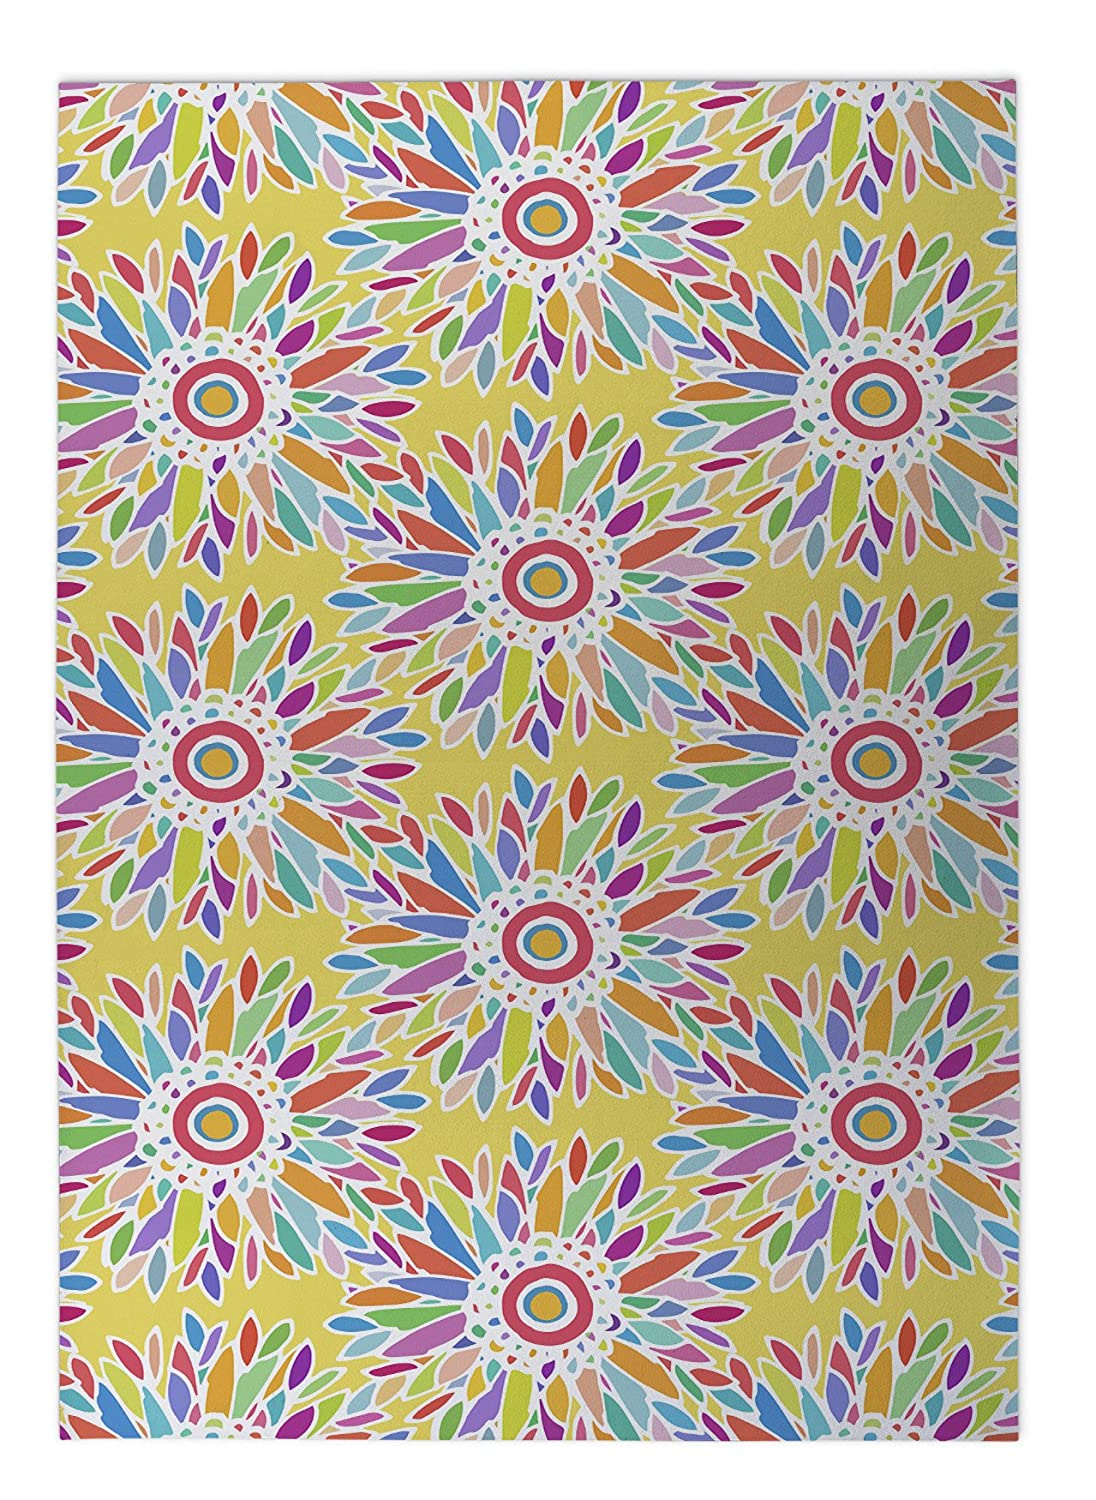 KAVKA Designs Fun Floral Yellow Indoor-Outdoor Floor Mat, Size: 24x36x0.2 - Yellow//Blue//Orang//Red//Purple BGAAVC546FM23 - TRUDYBOOM Collection